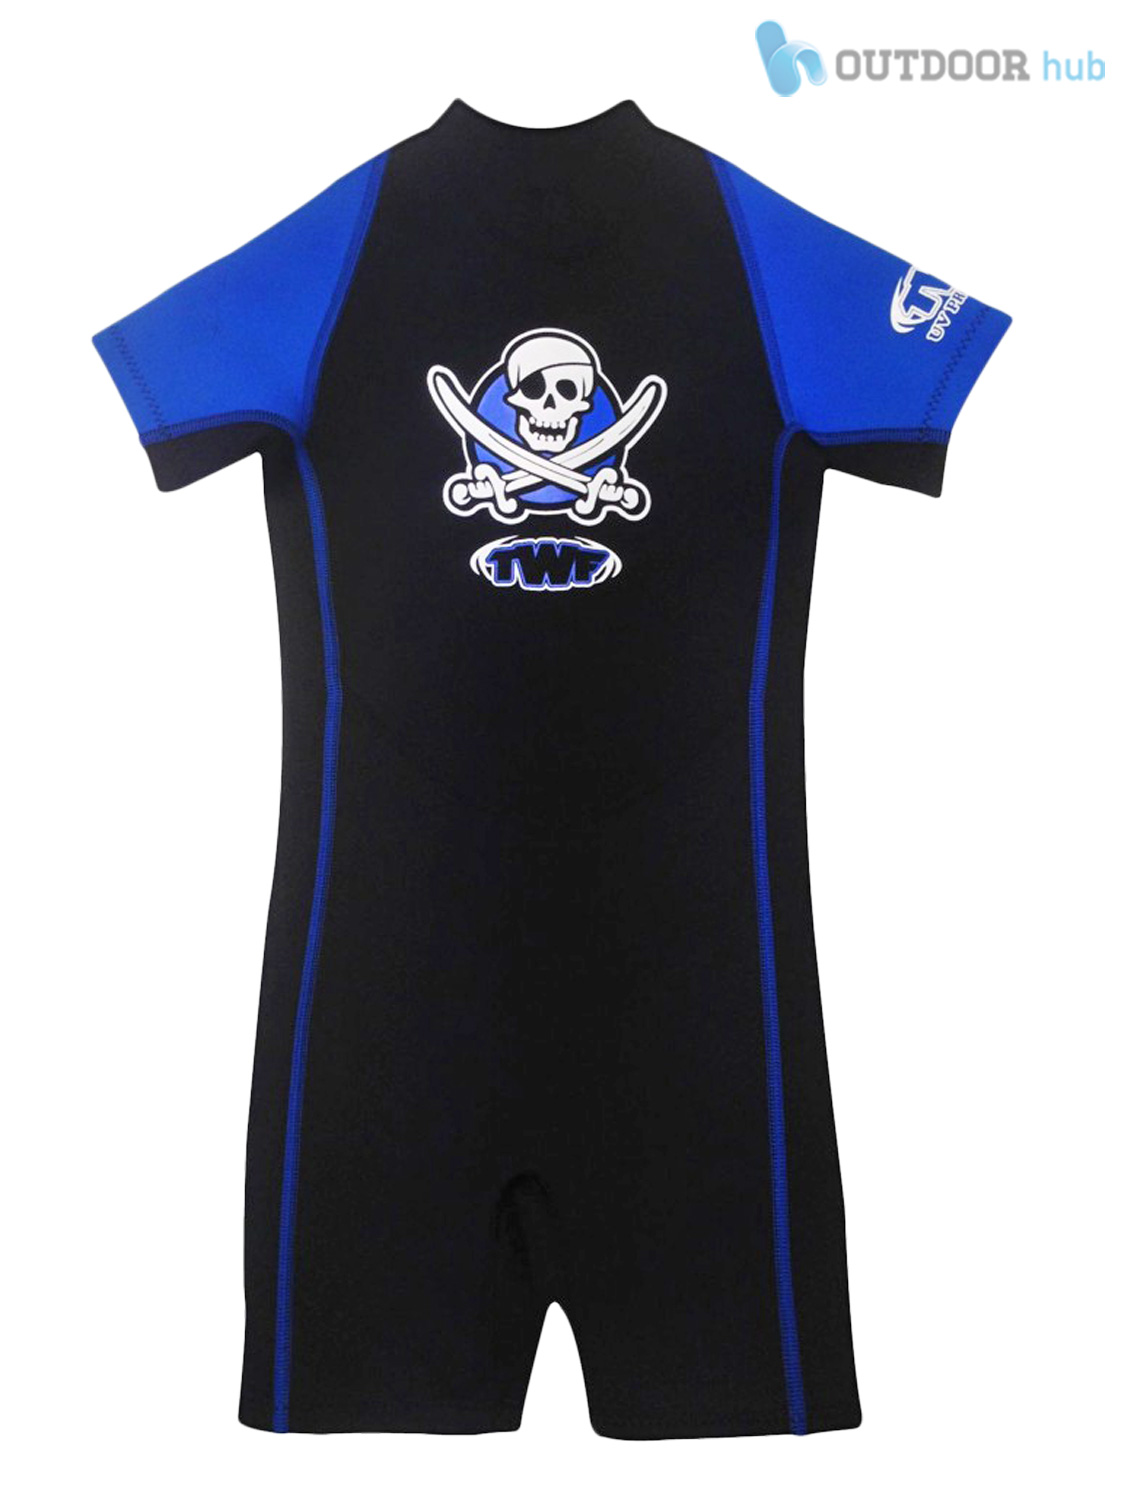 TWF-2mm-Kids-Shortie-Wetsuit-Childs-Shorty-Boys-Girls-Beach-Swim-Baby-Toddler thumbnail 4